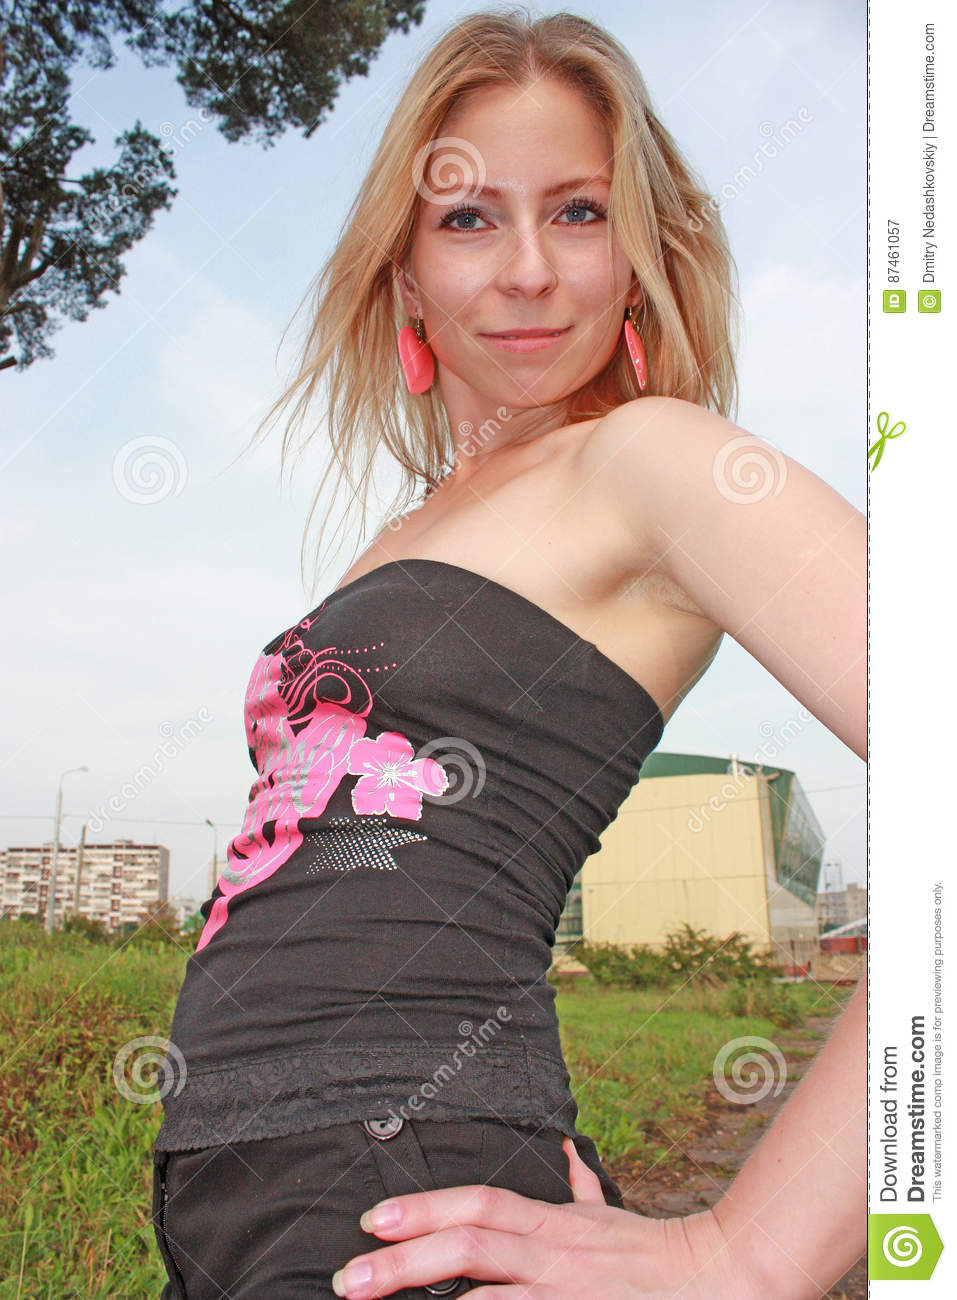 The Beautiful Young Girl Goes Around The City There Was A Hot Weather The Young Girl Appeared In The Wonderful Wood